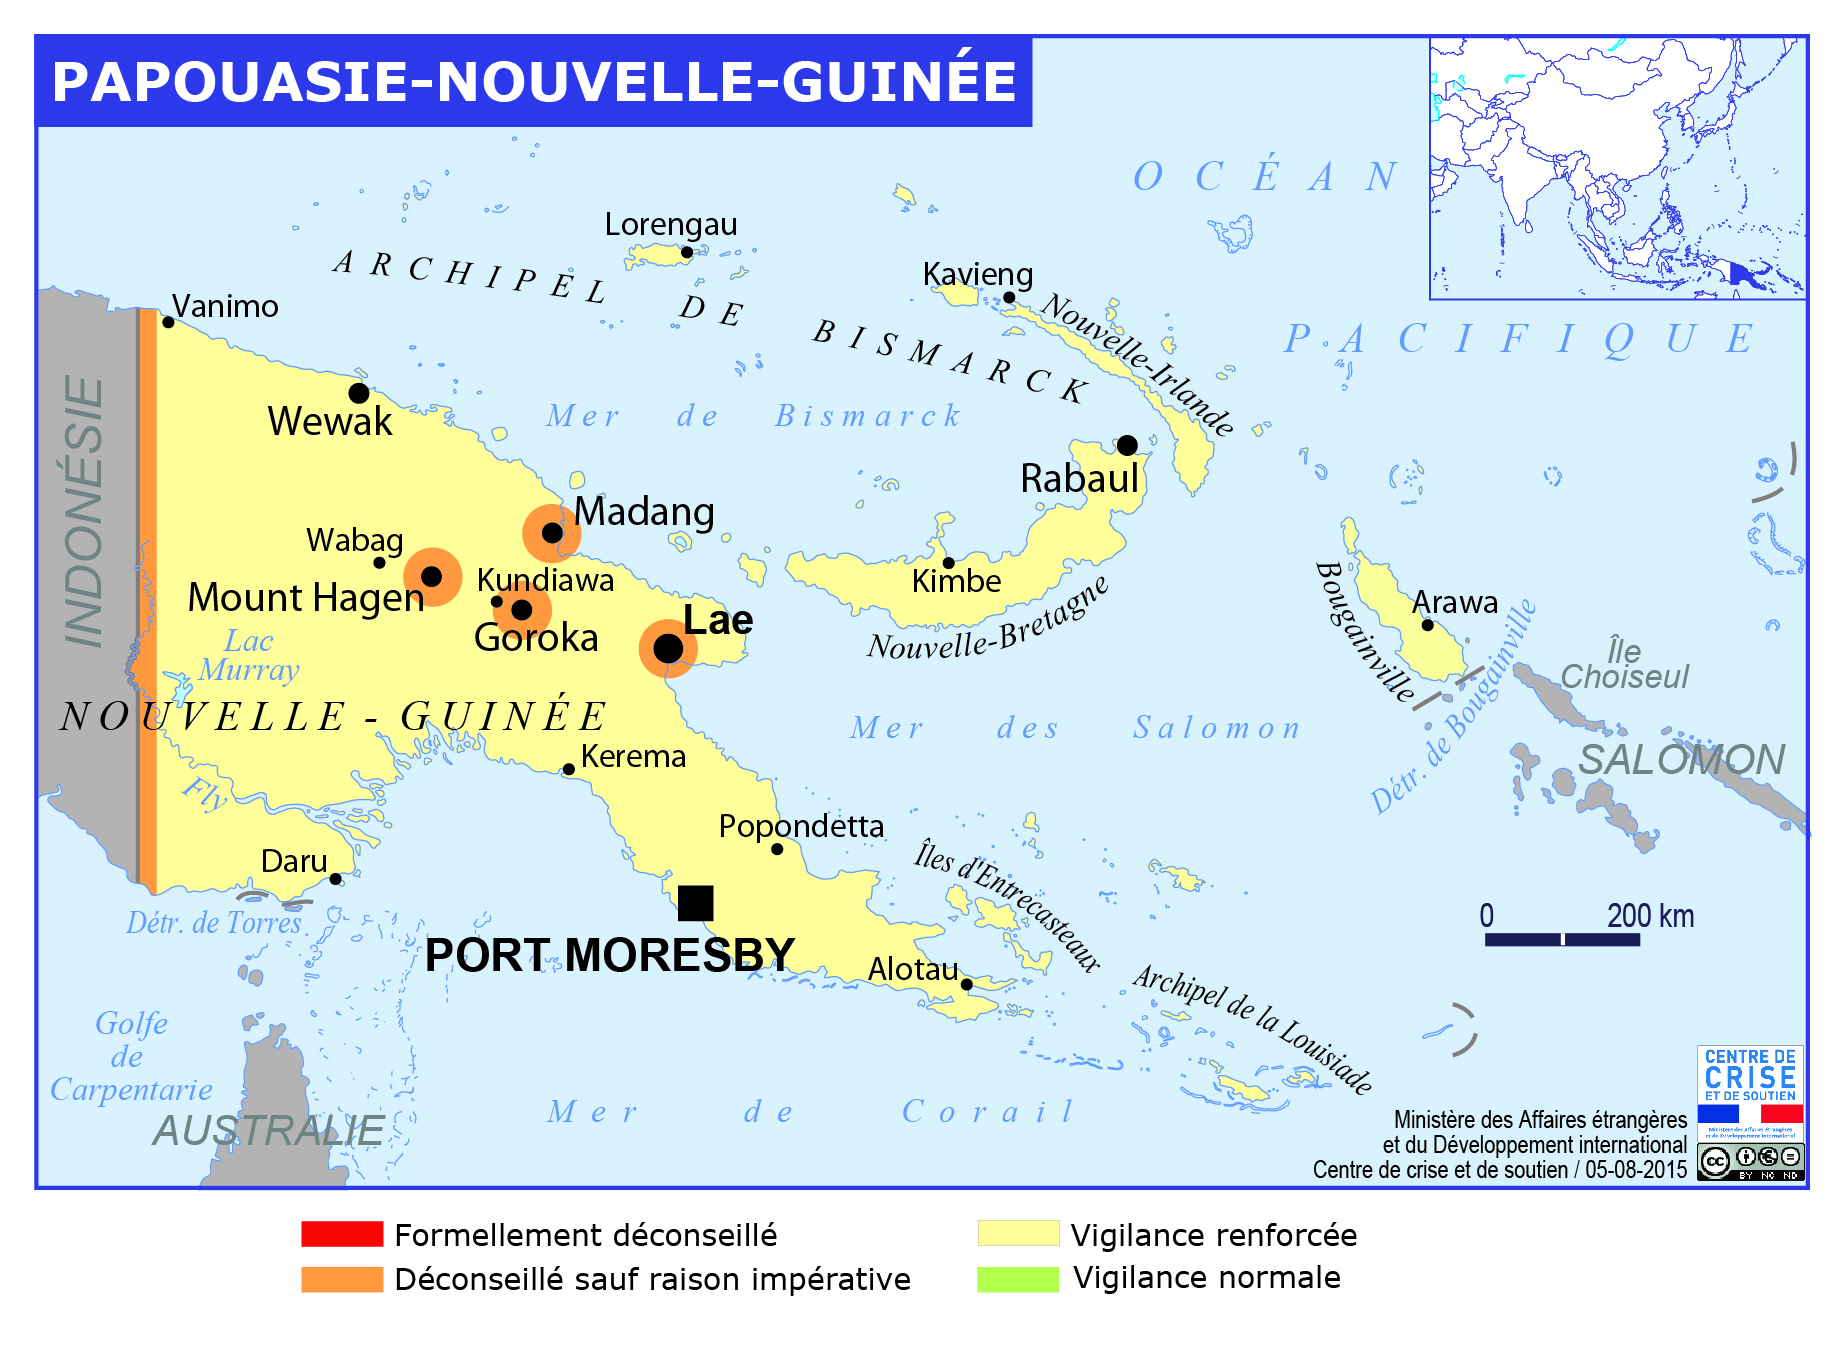 papouasie nouvelle guinee-